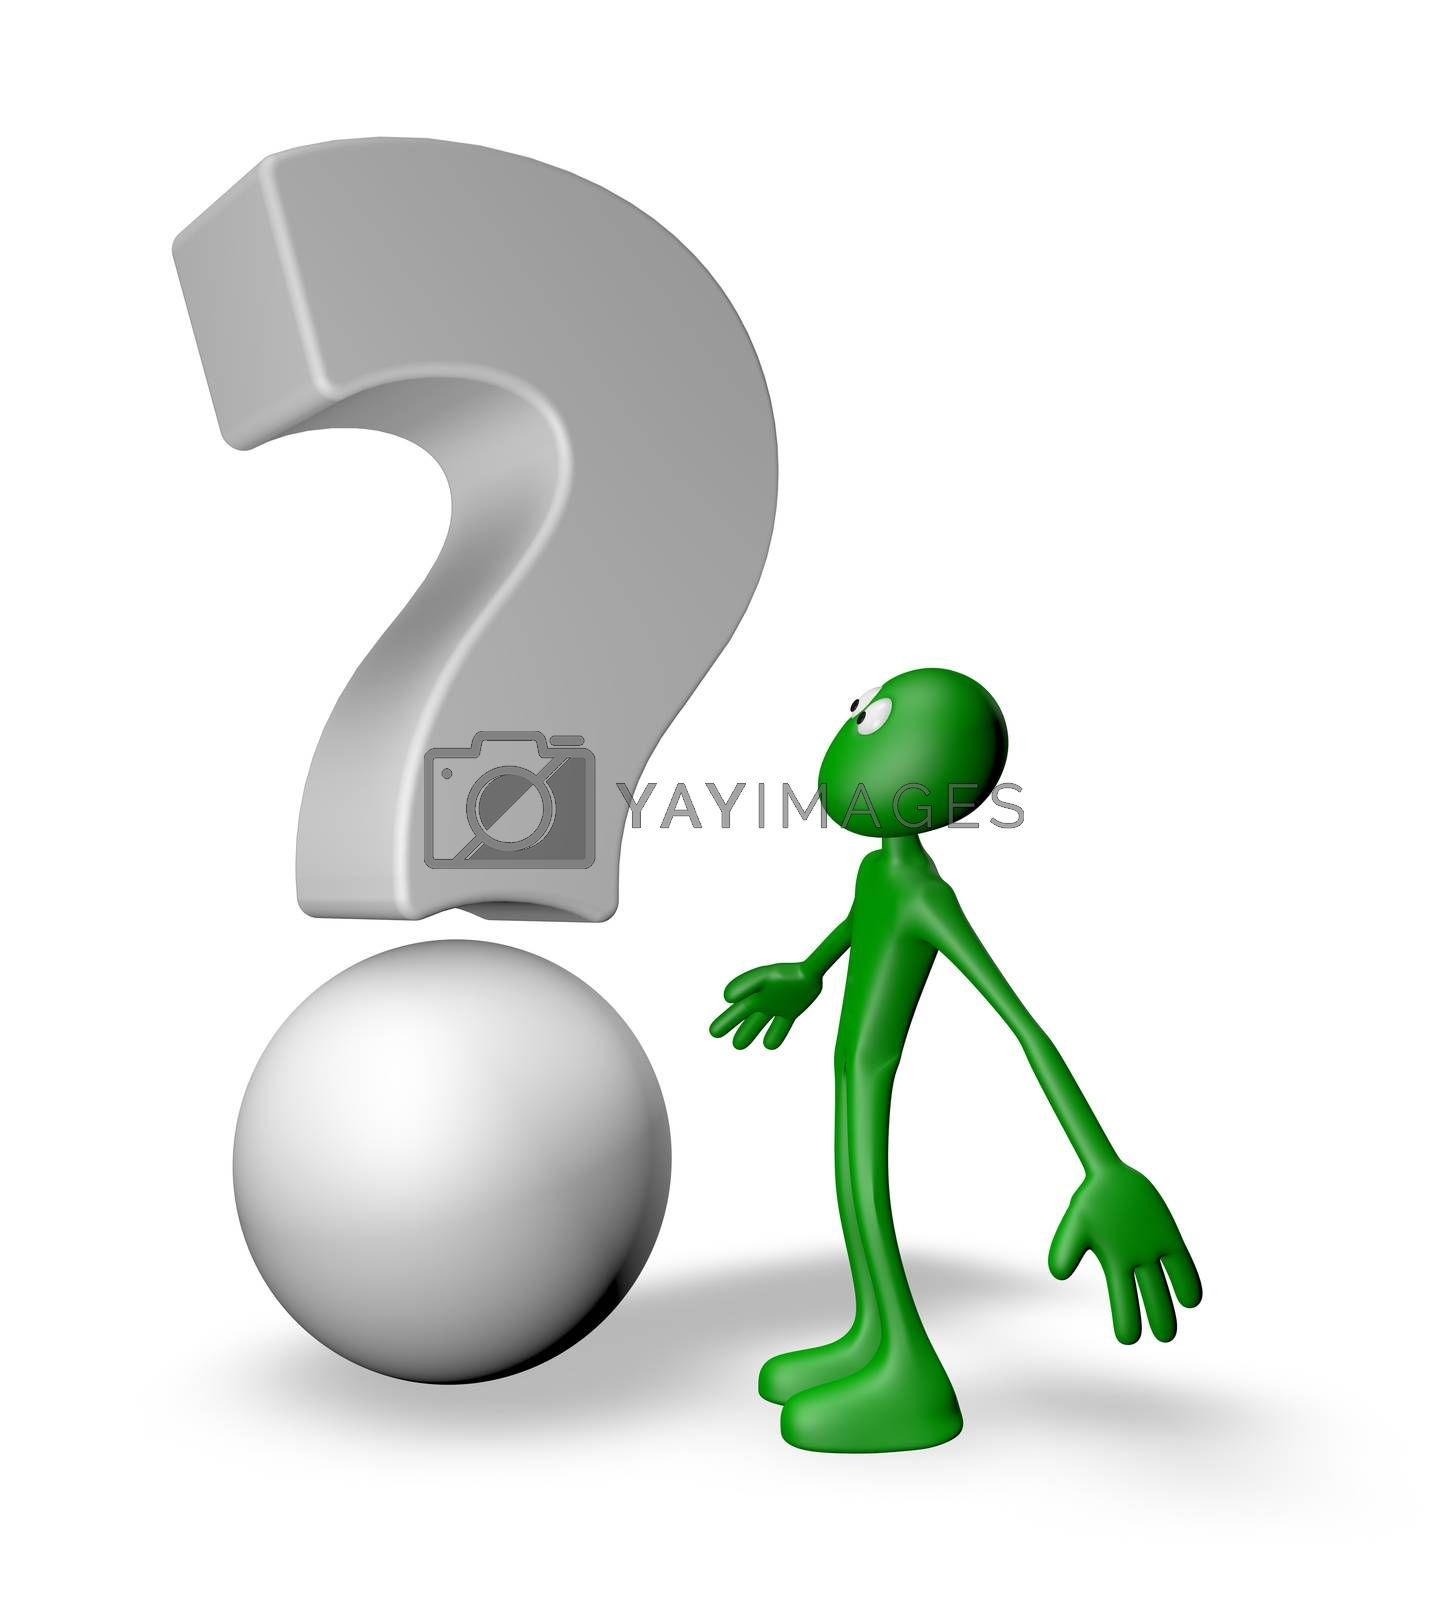 green guy and question mark - 3d illustration